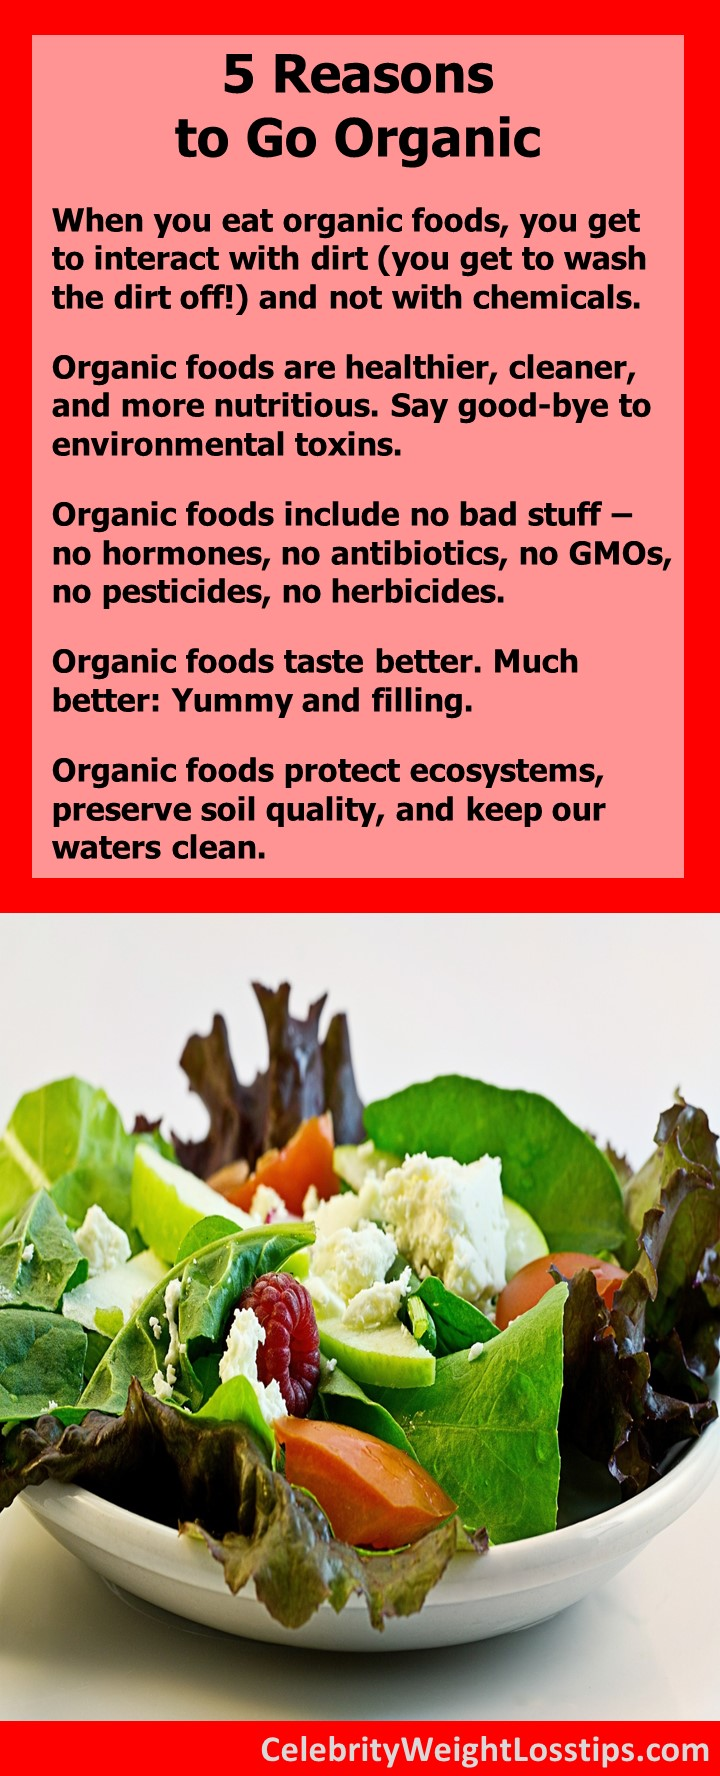 5 Reasons to Go Organic